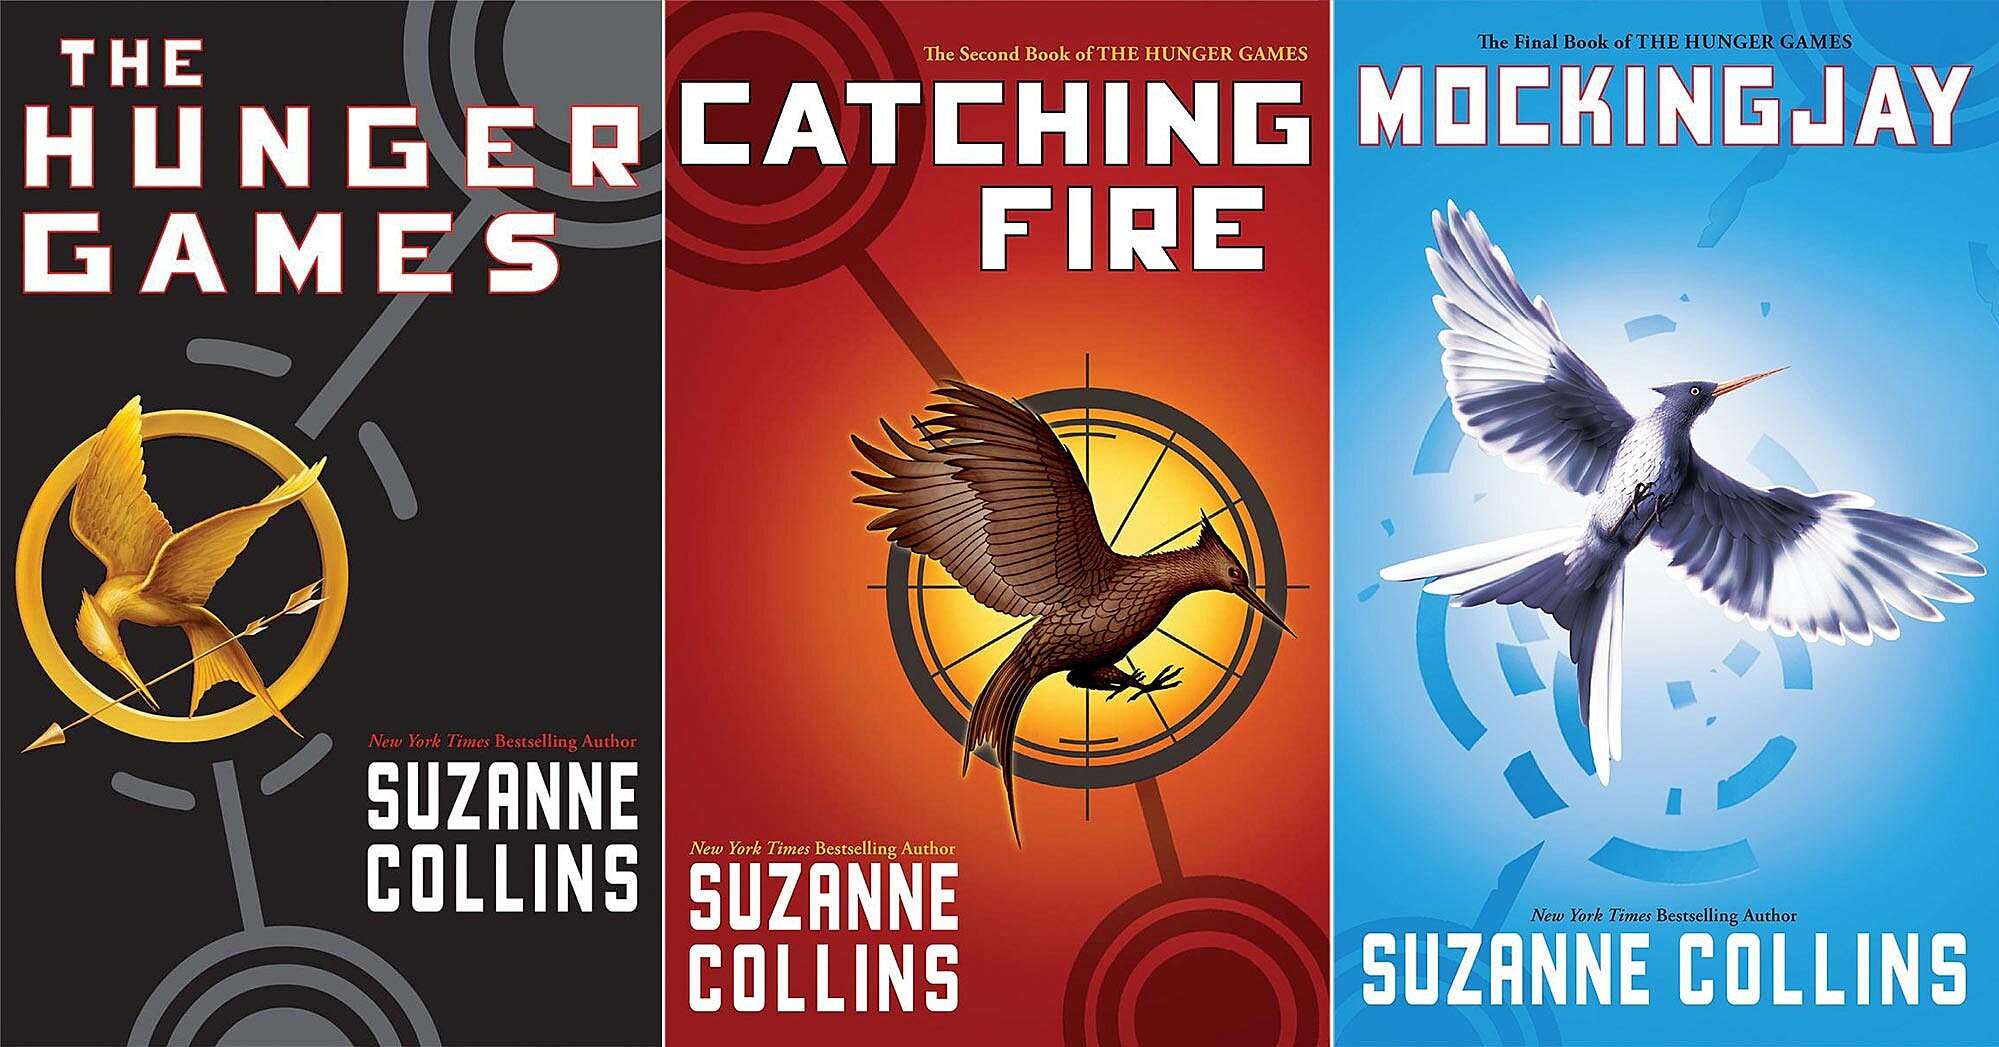 How to win EW's Hunger Games book trilogy box set giveaway